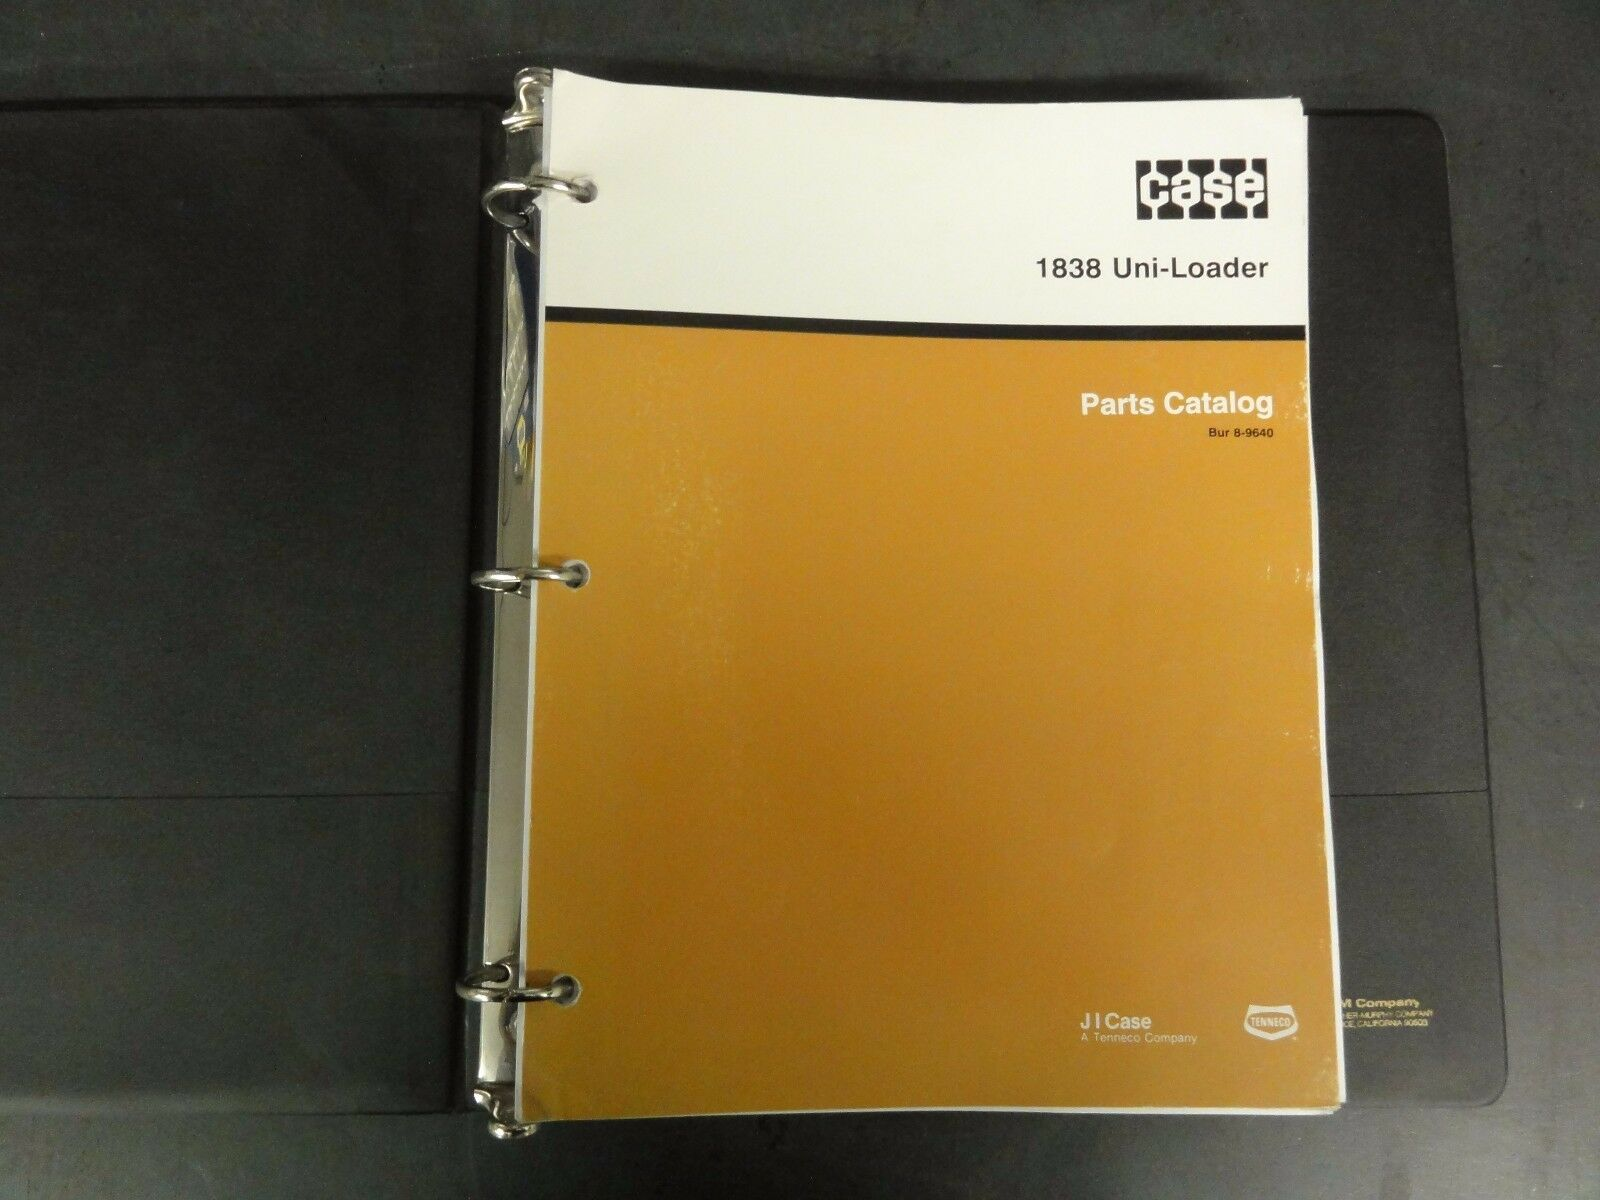 Case 1838 Uni-Loader Parts Catalog Bur 8-9640 1 of 10Only 1 available ...